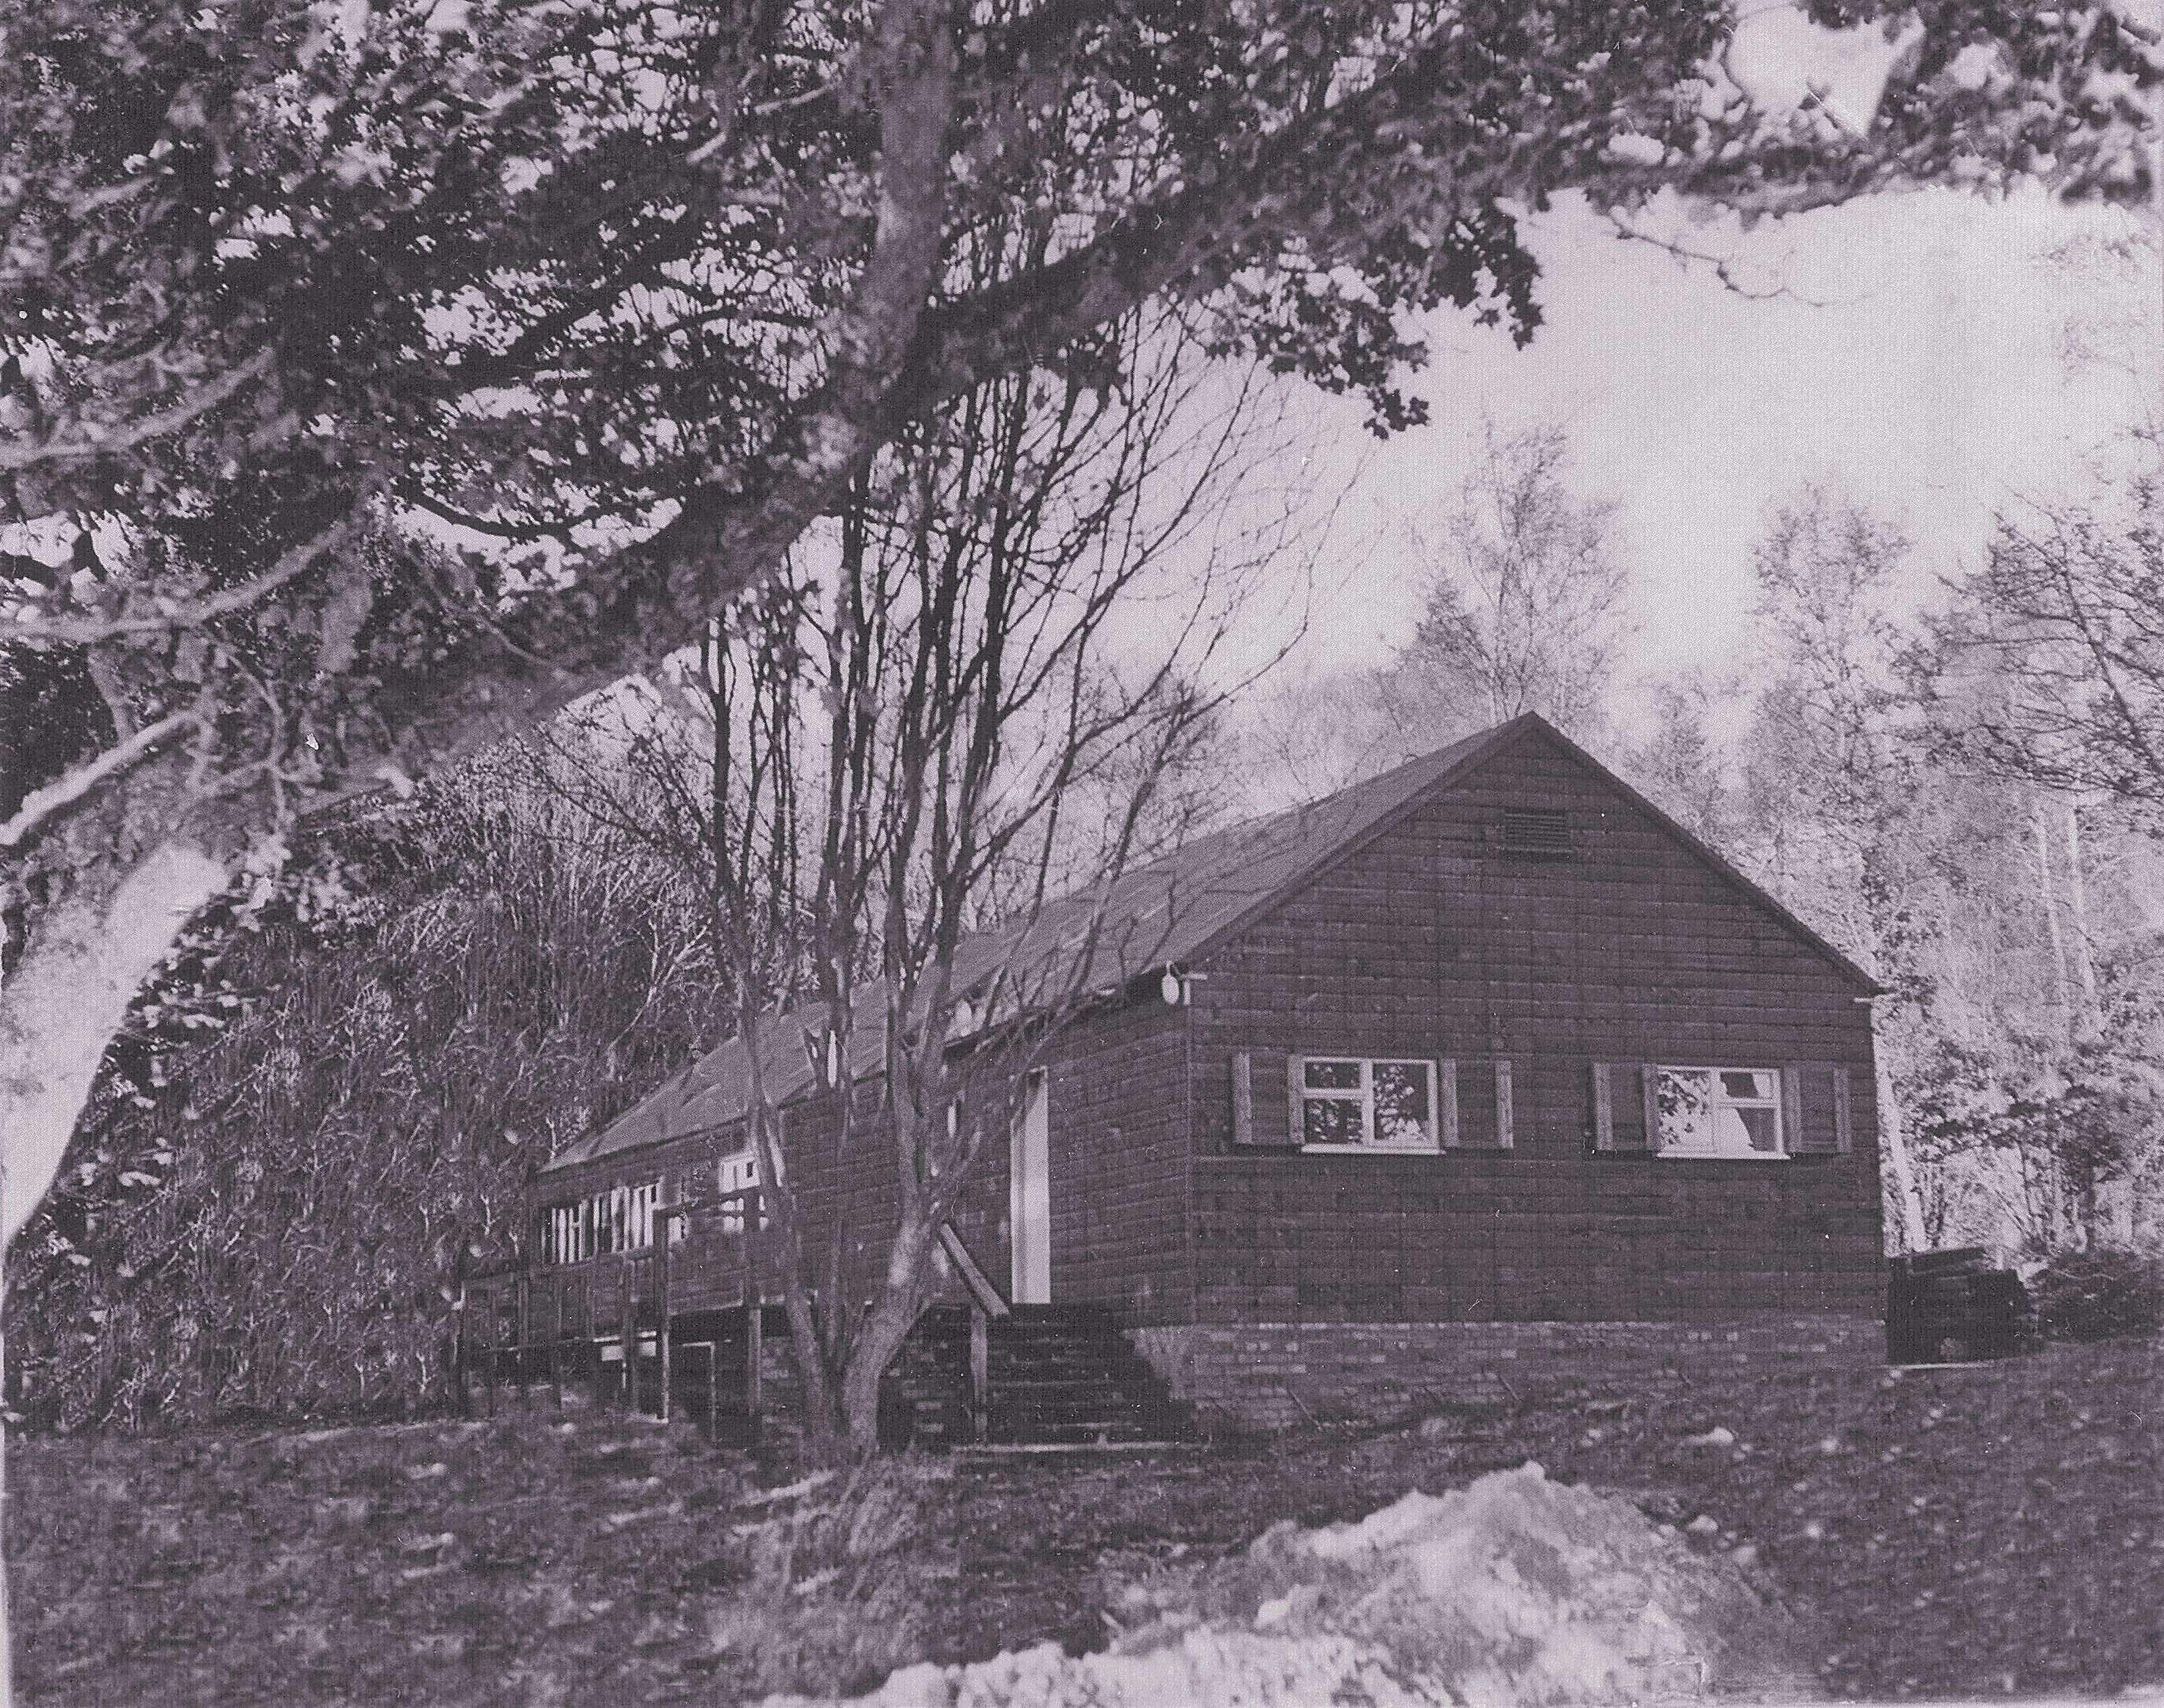 Ladenford hut shortly after it was constructed